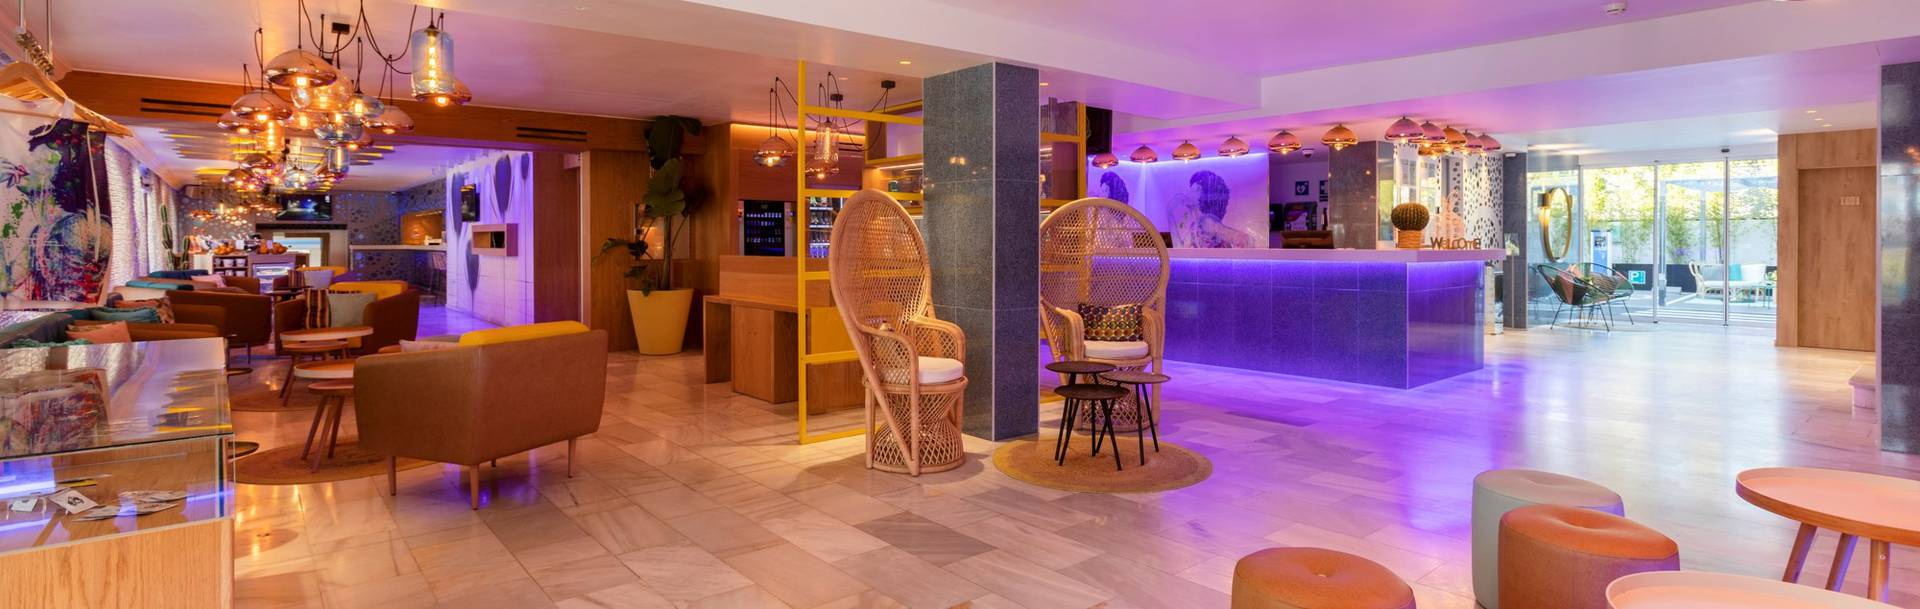 hotel sotavento club apartments magaluf